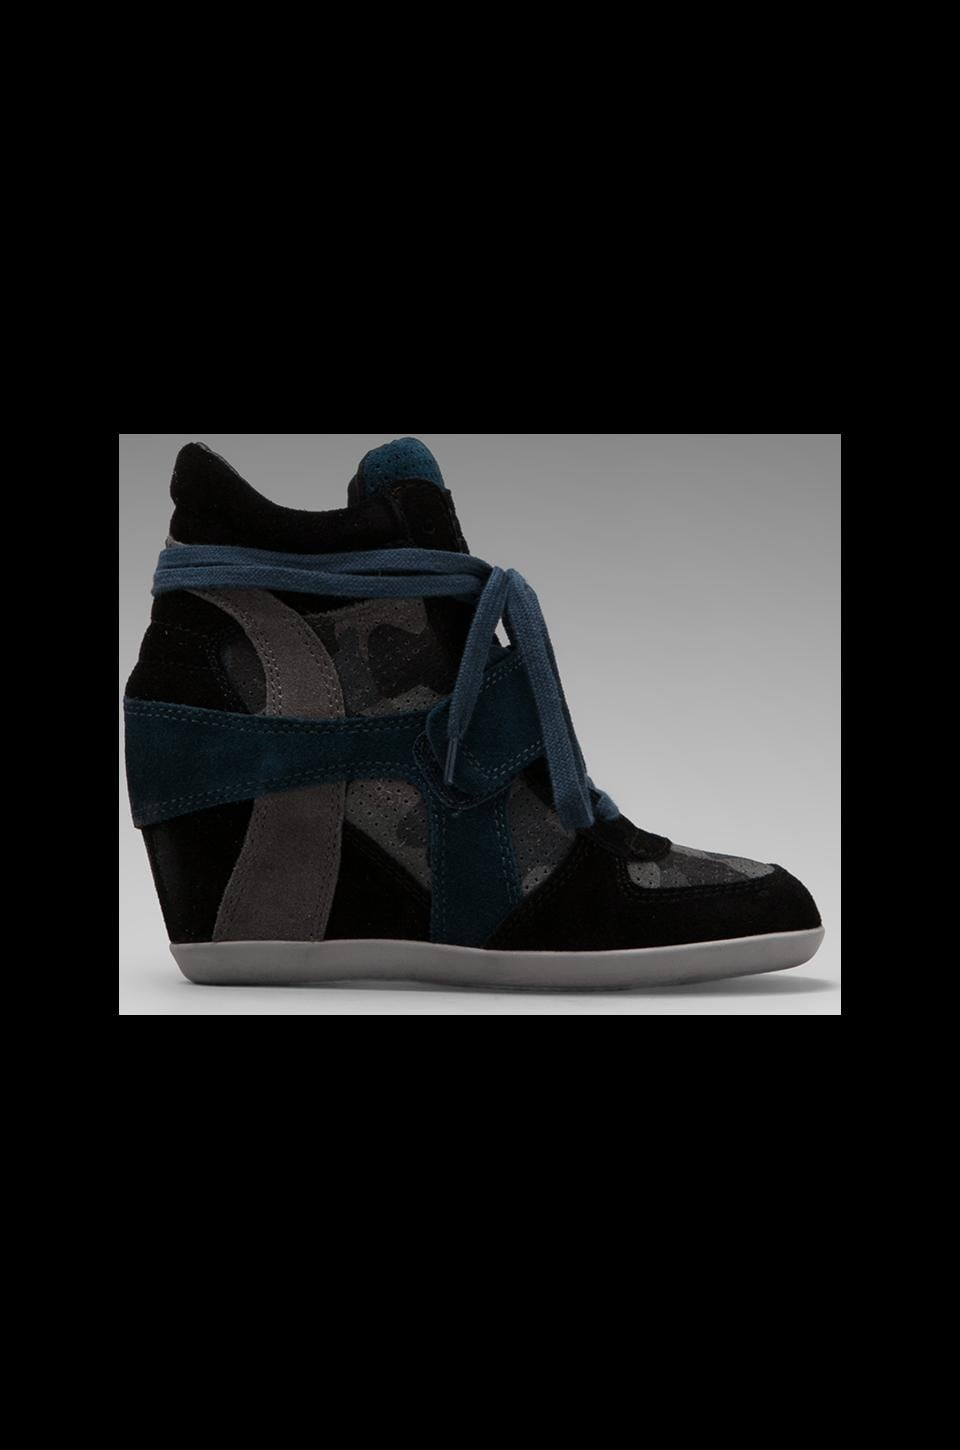 Ash Bowie Bis Wedge Sneaker in Black/Smoke